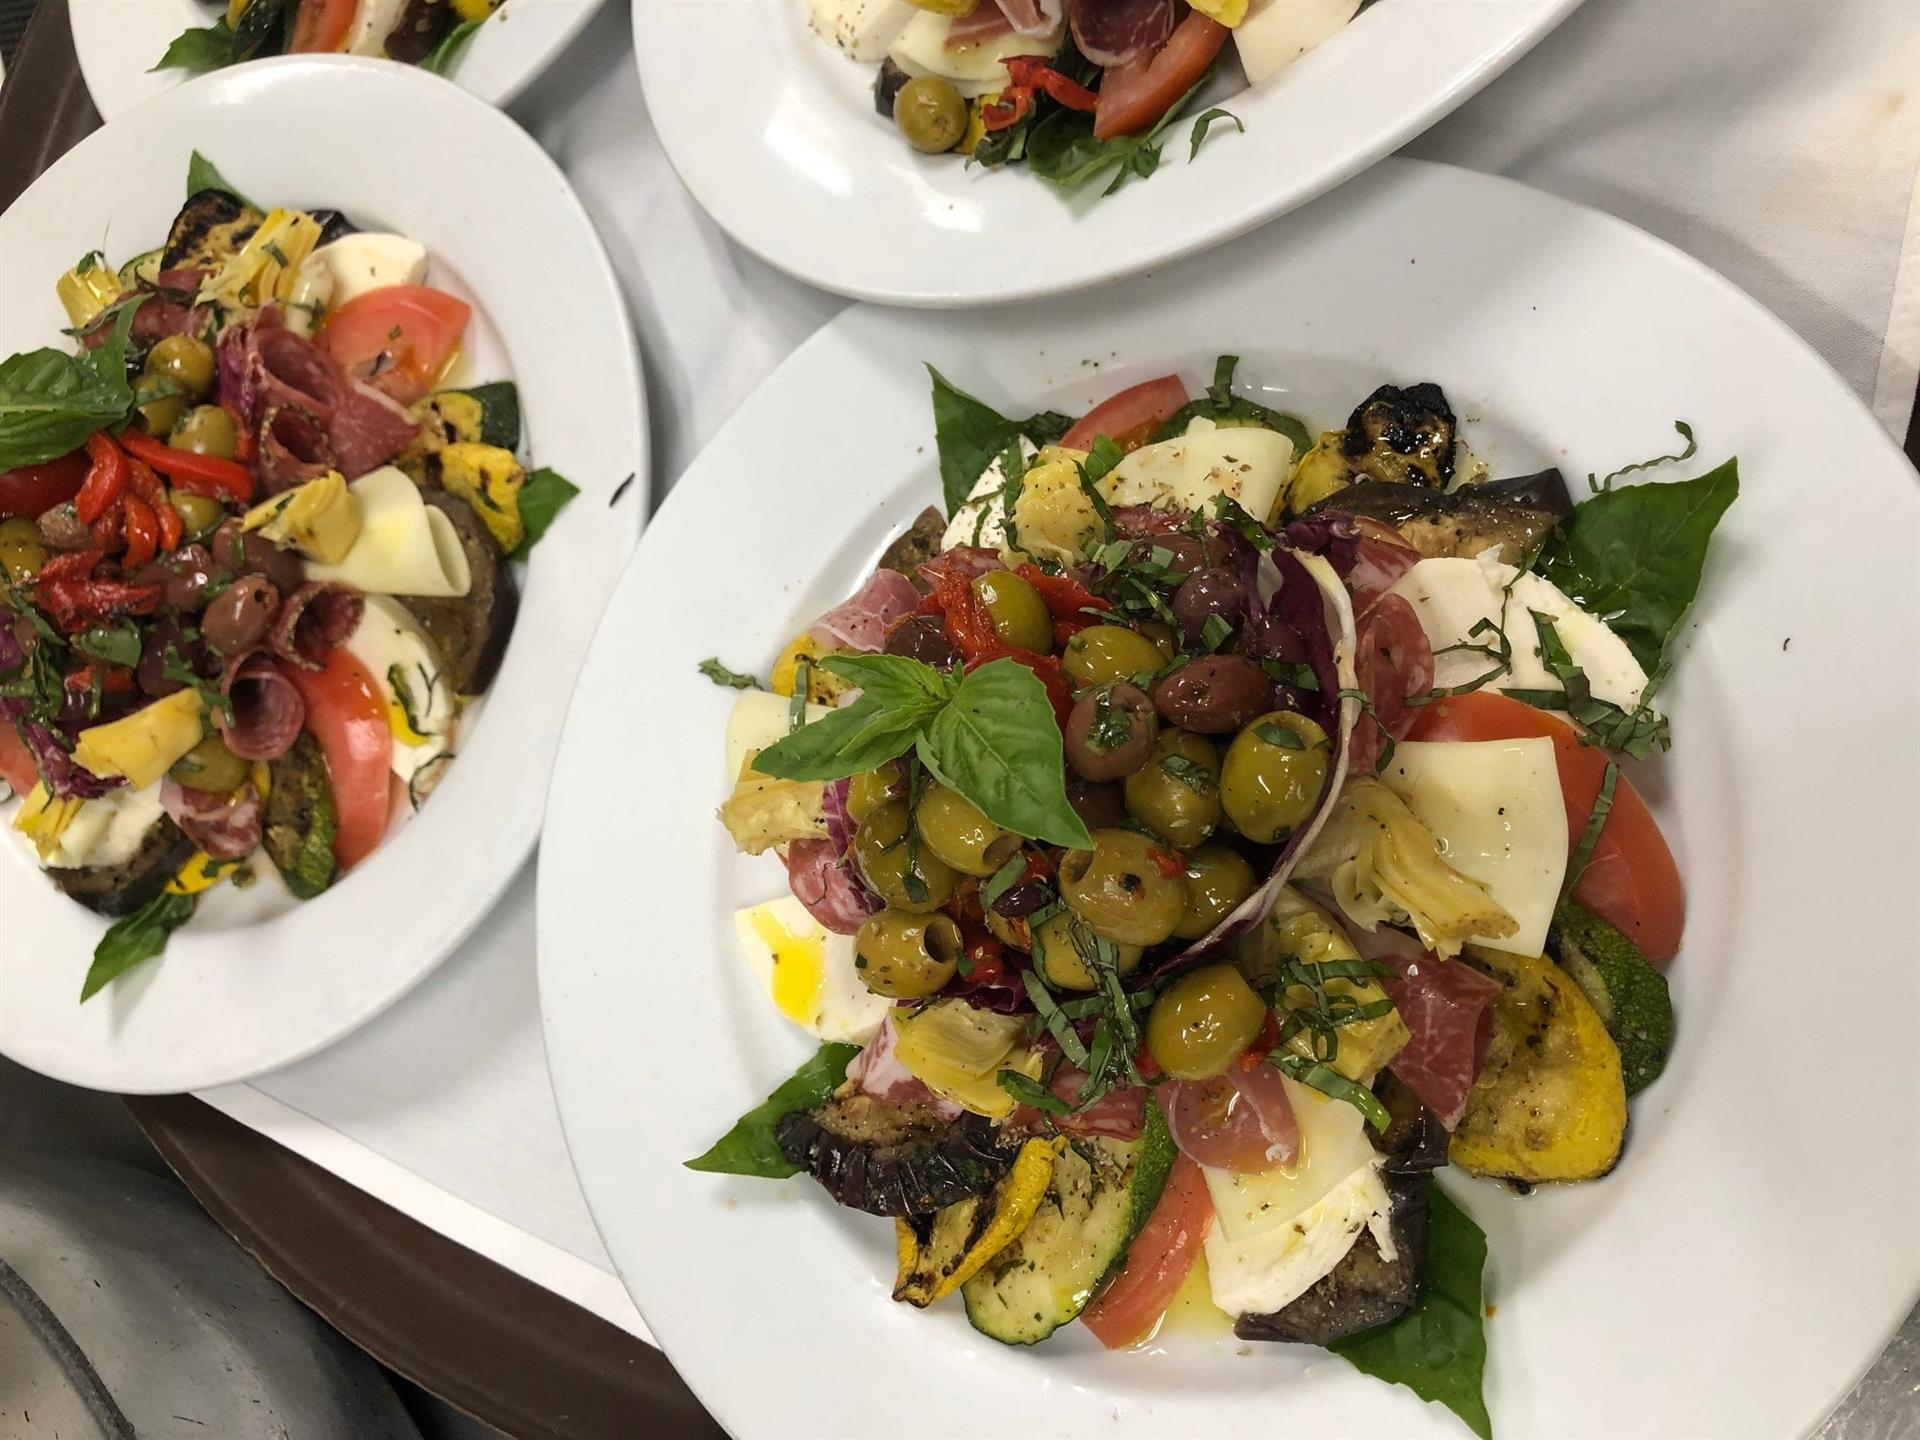 An assortment of Antipasto Salads on dishes in the kitchen